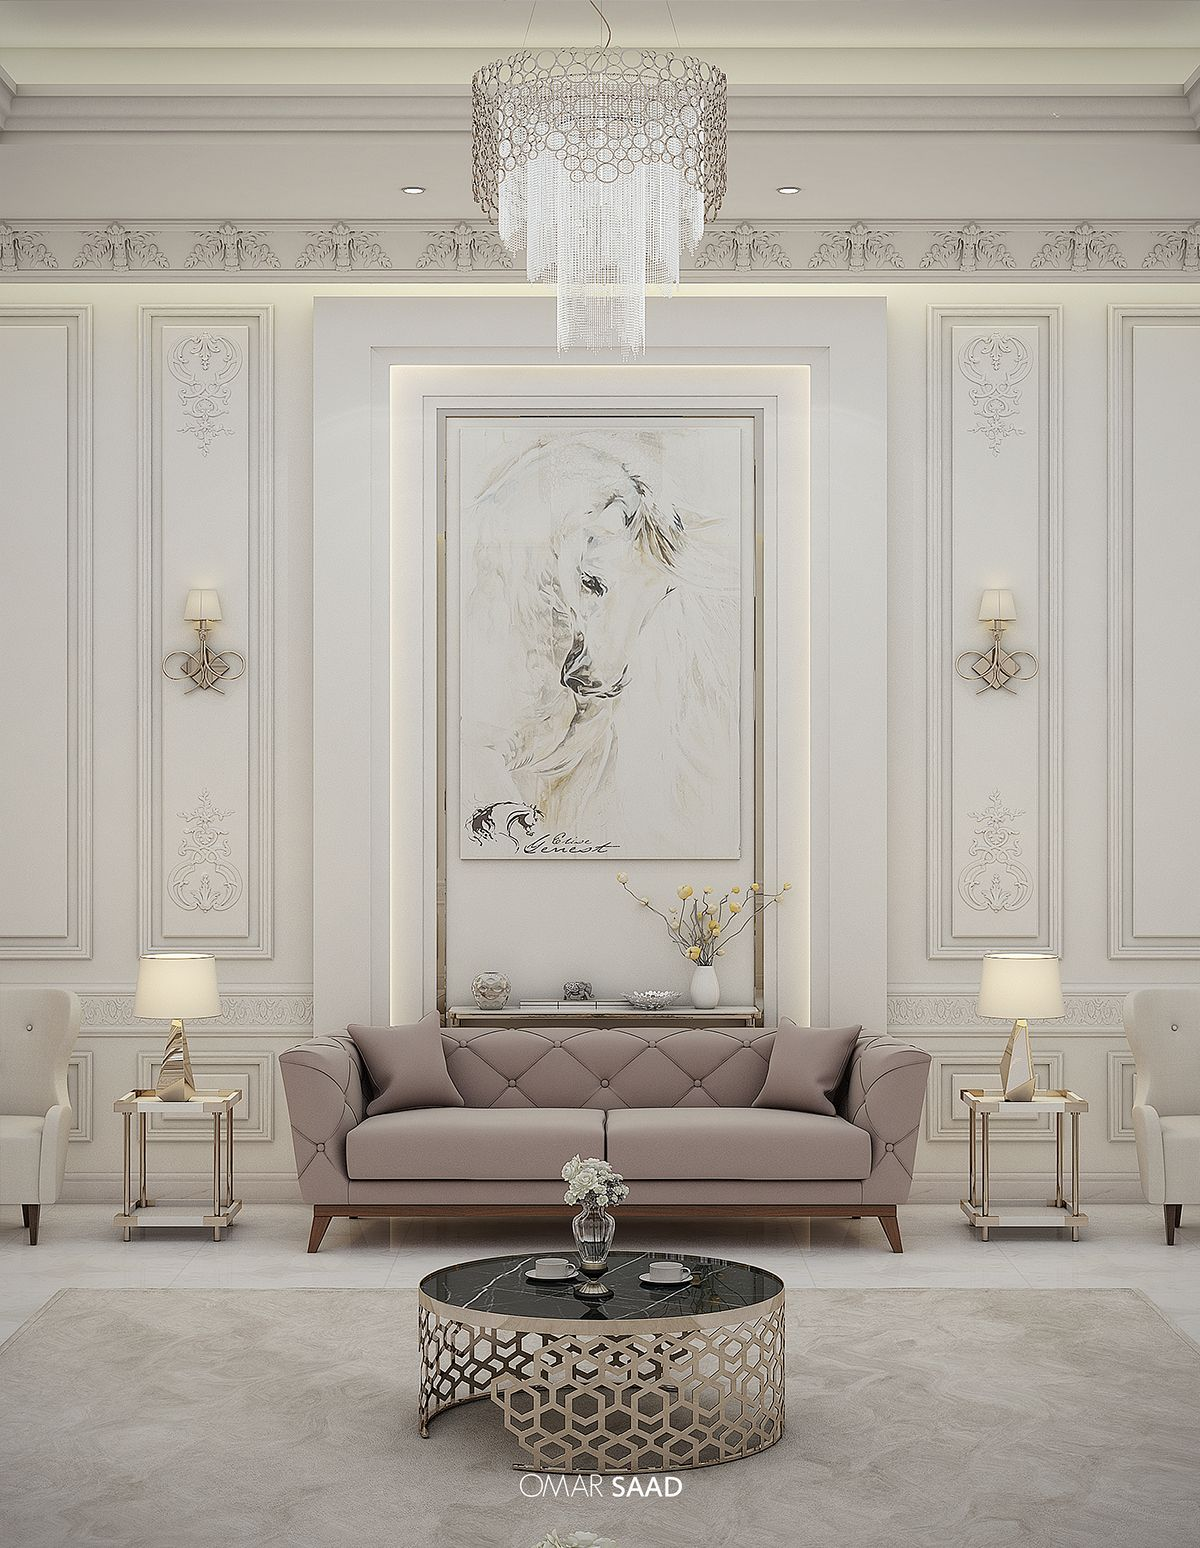 Luxury classic villa interior design on behance